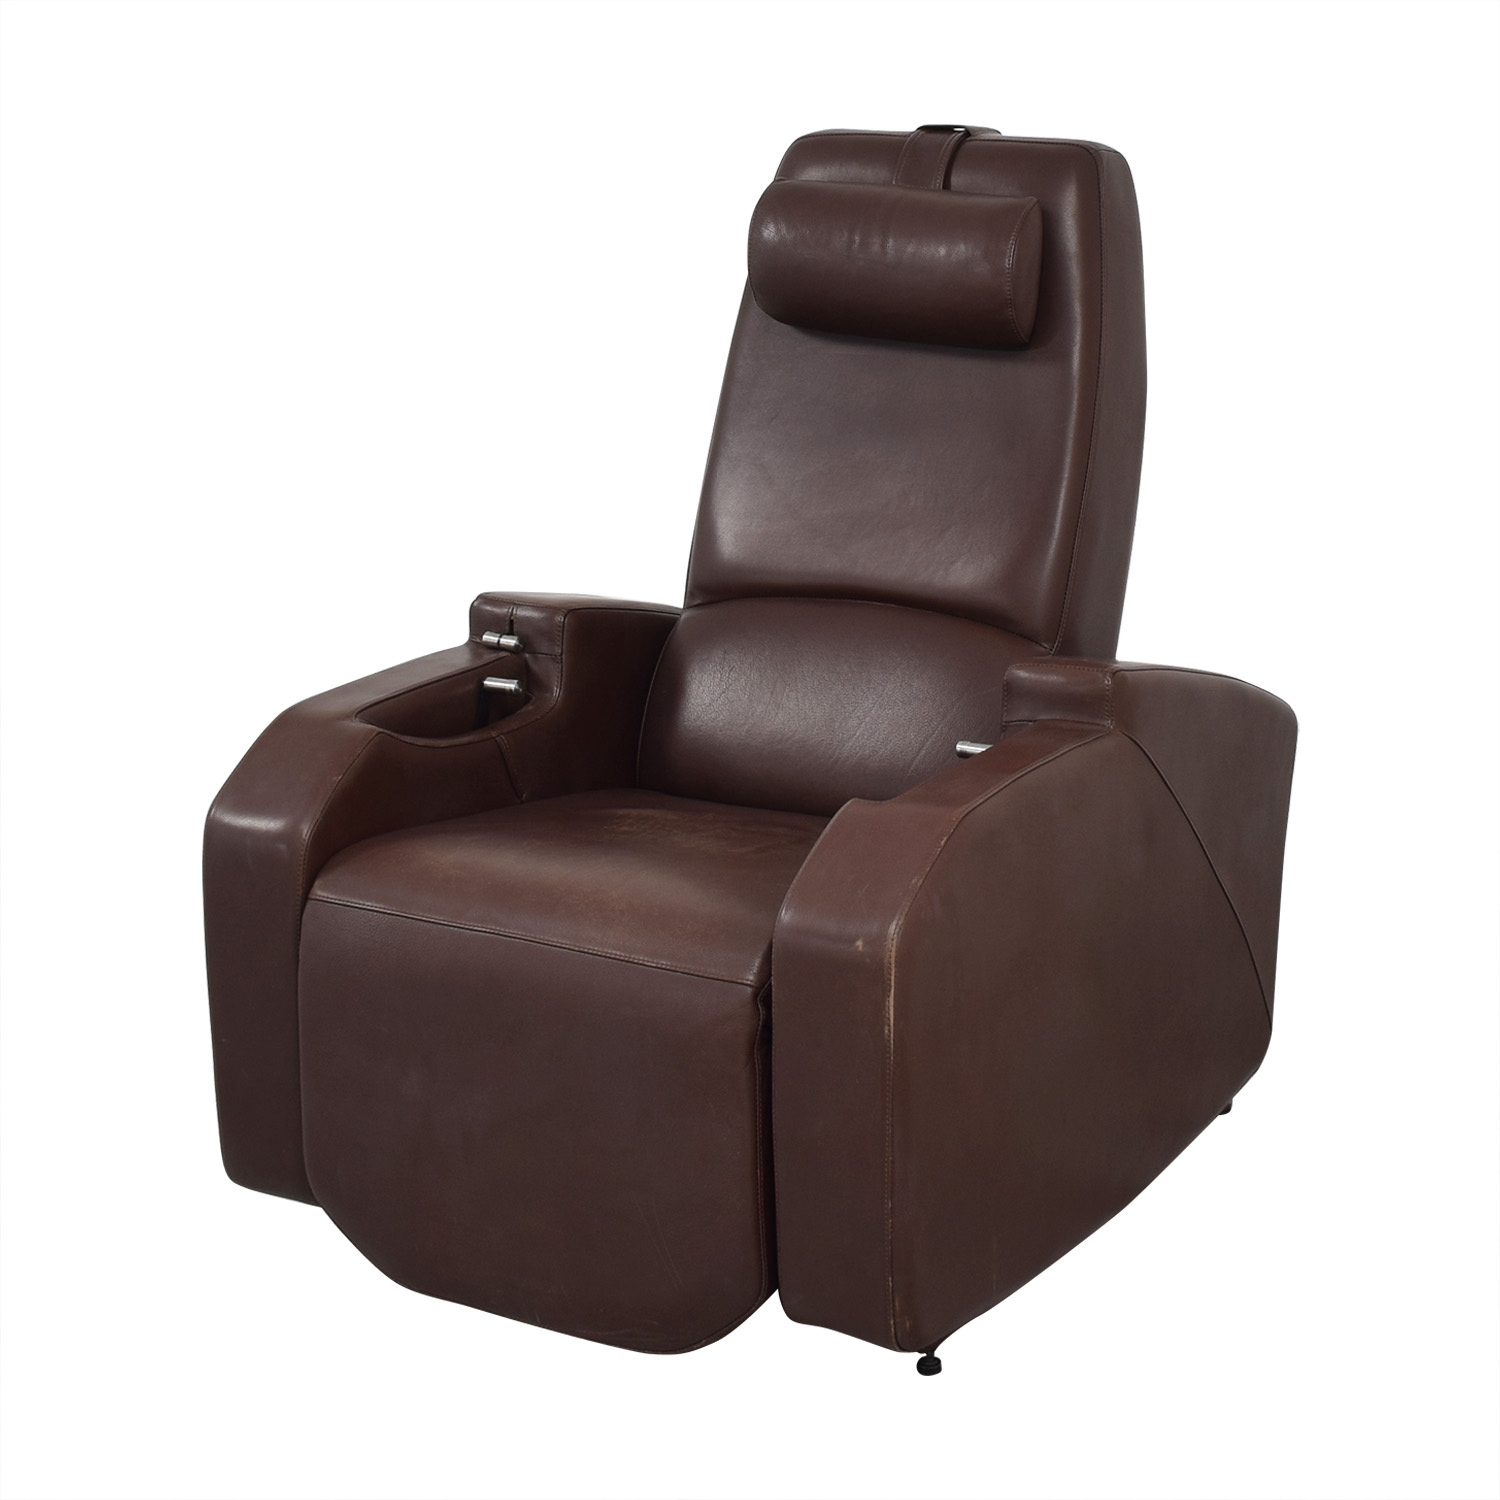 Relax The Back Relax the Back Zero Gravity Leather Rocking Recliner used